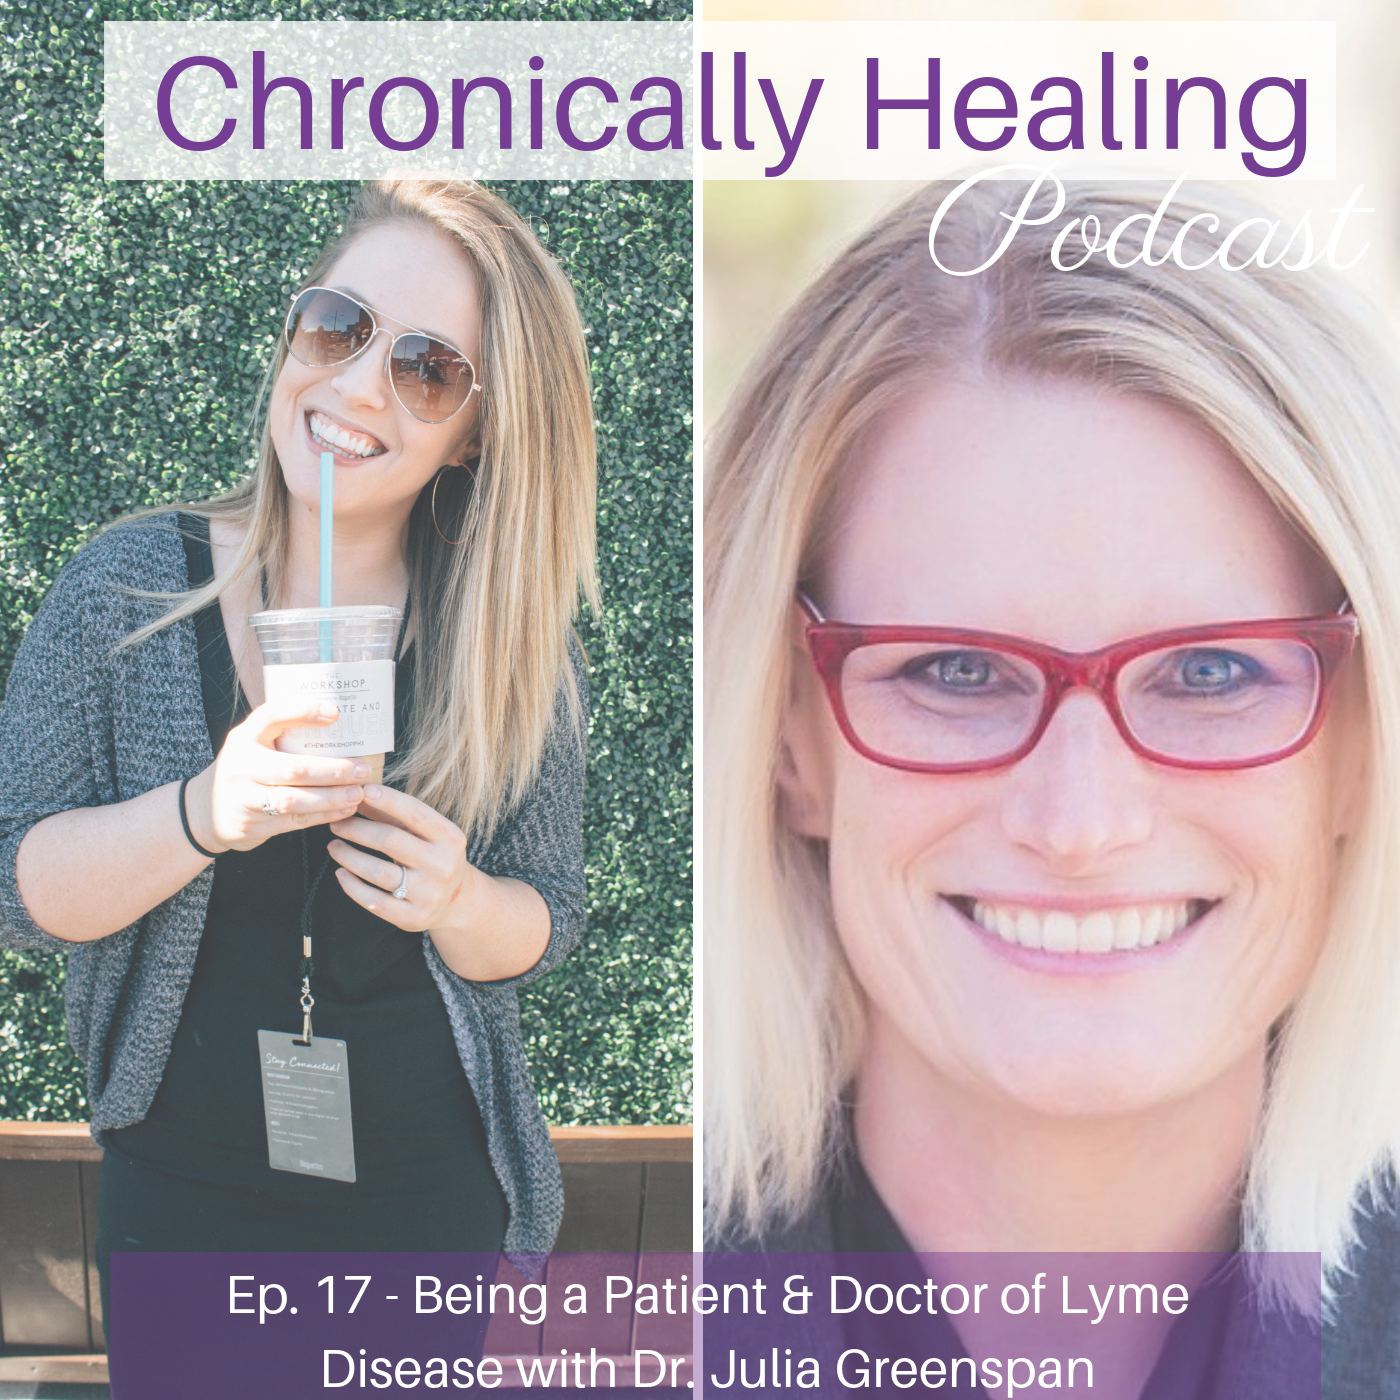 Chronically Healing Podcast Ep. 17 – Being a Patient & Doctor of Lyme Disease with Dr. Julia Greenspan